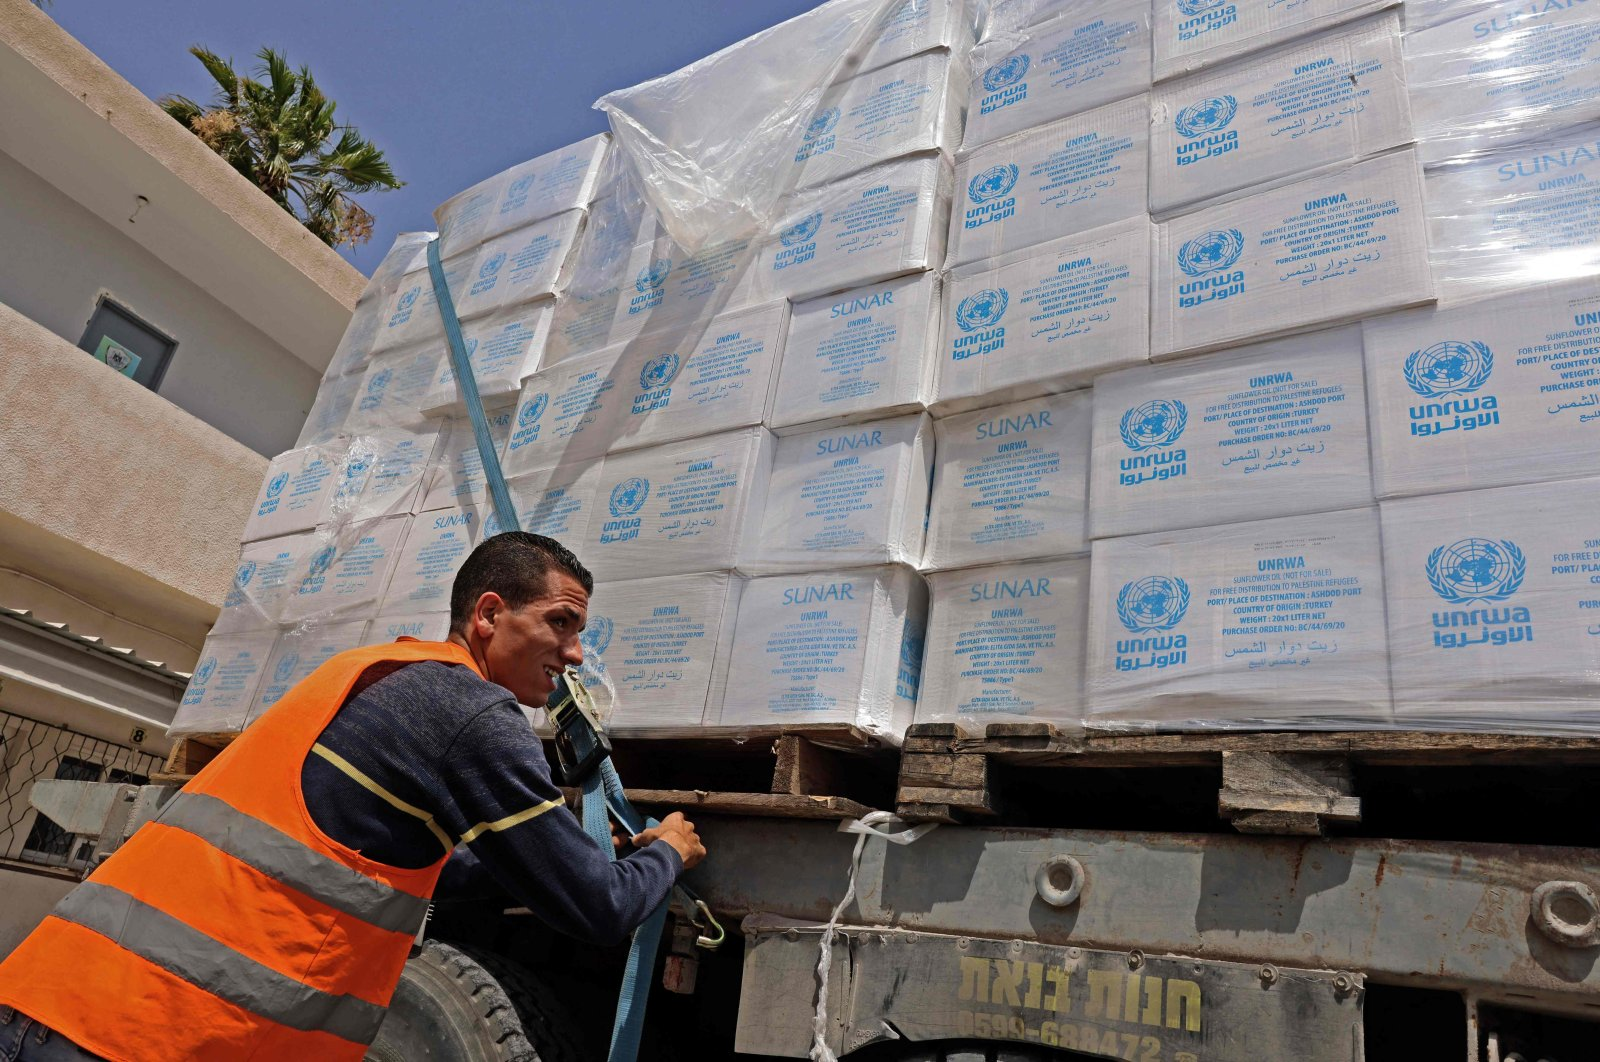 A truck loaded with humanitarian aid, passes into Rafah in the southern Gaza Strip, through the Kerem Shalom crossing, the main passage point for goods entering Gaza from Israel, May 21, 2021. (AFP Photo)